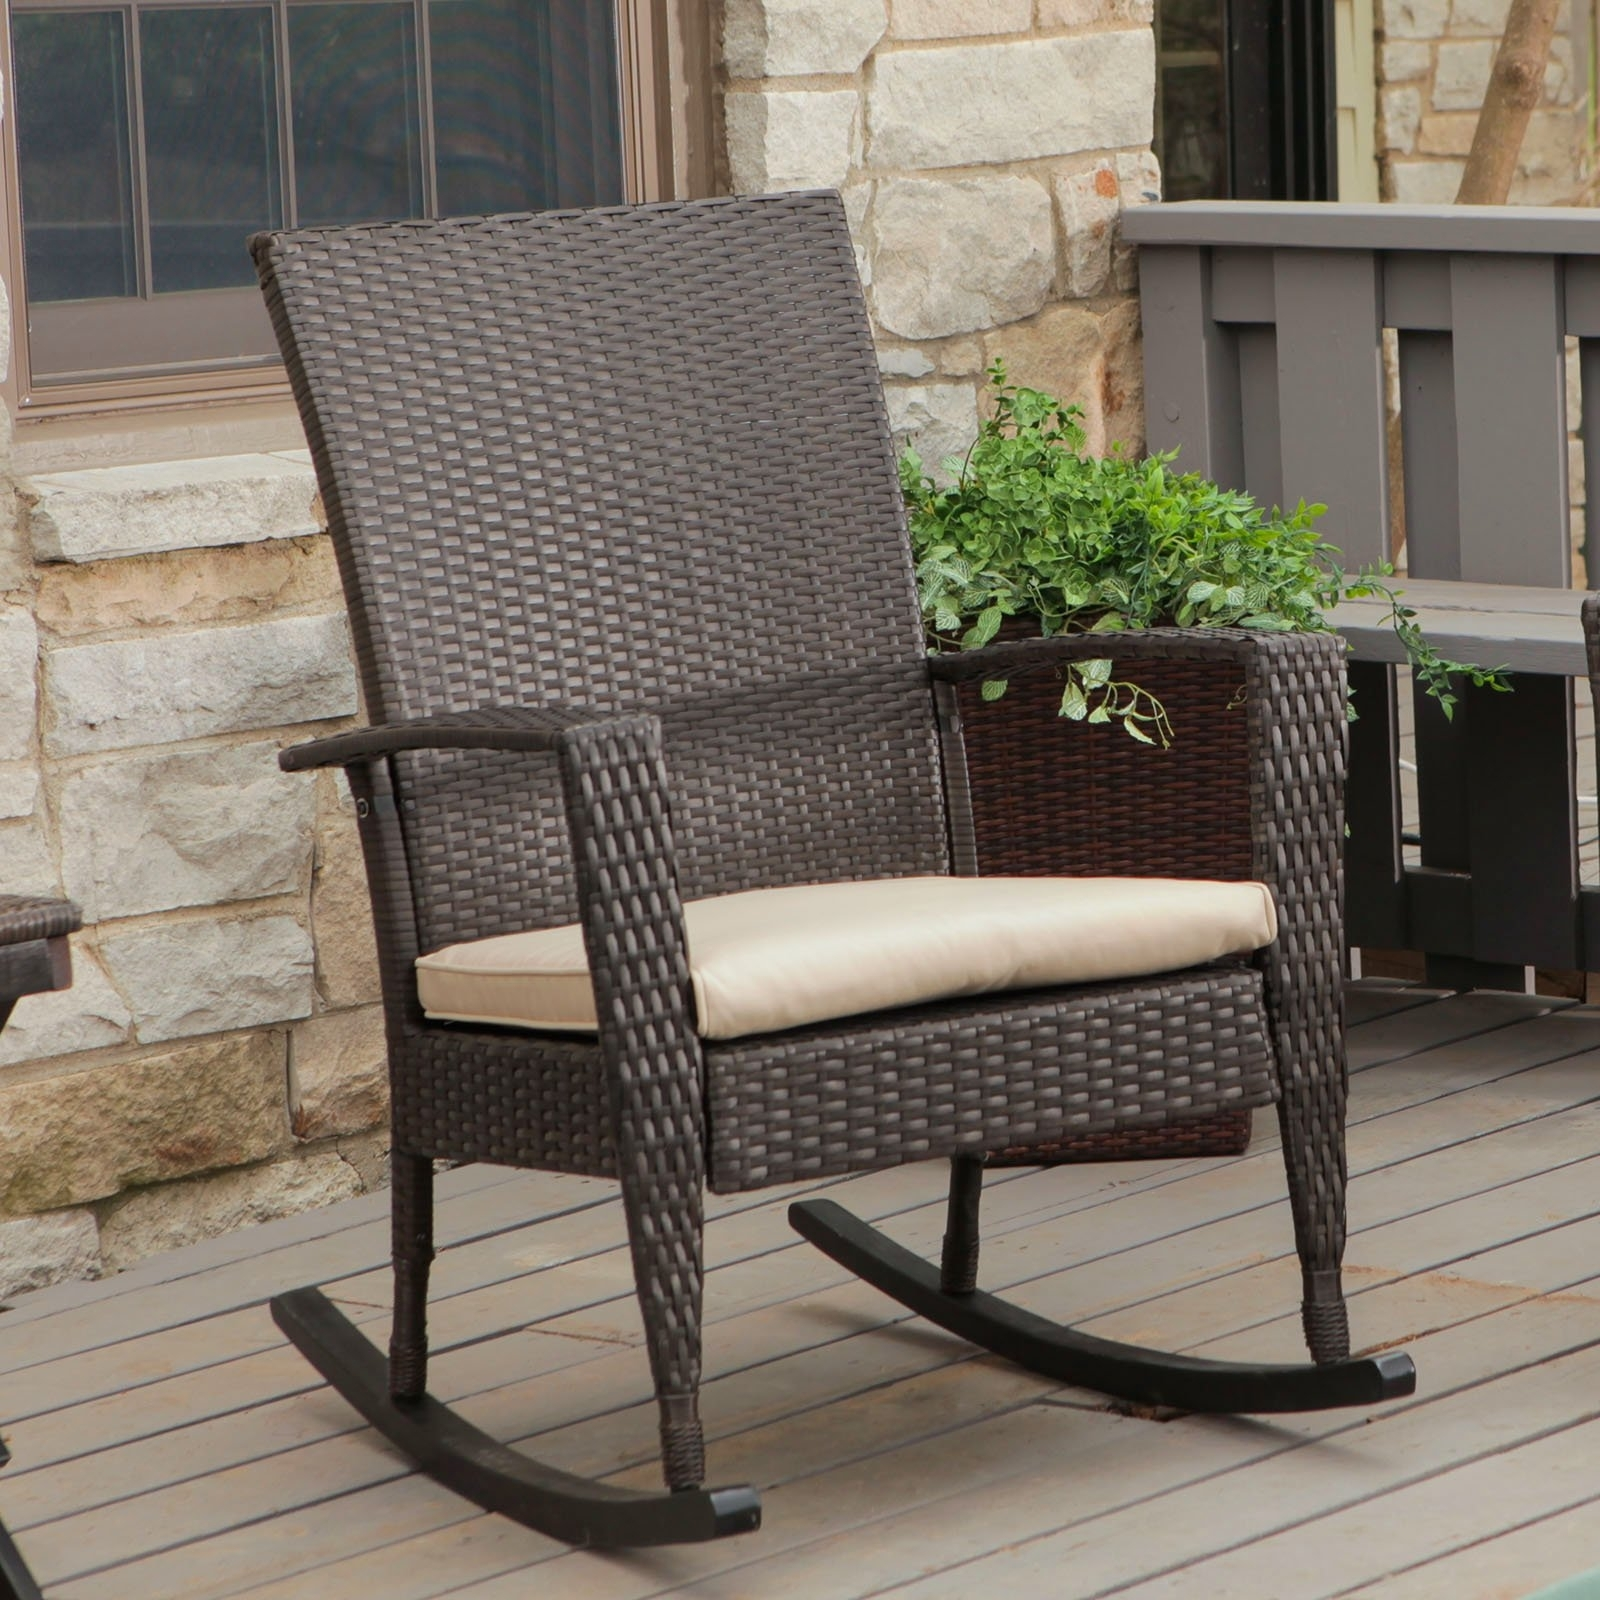 Decorating Modern Lawn Chairs Modern Balcony Furniture Modern Patio Throughout Outside Rocking Chair Sets (View 5 of 15)